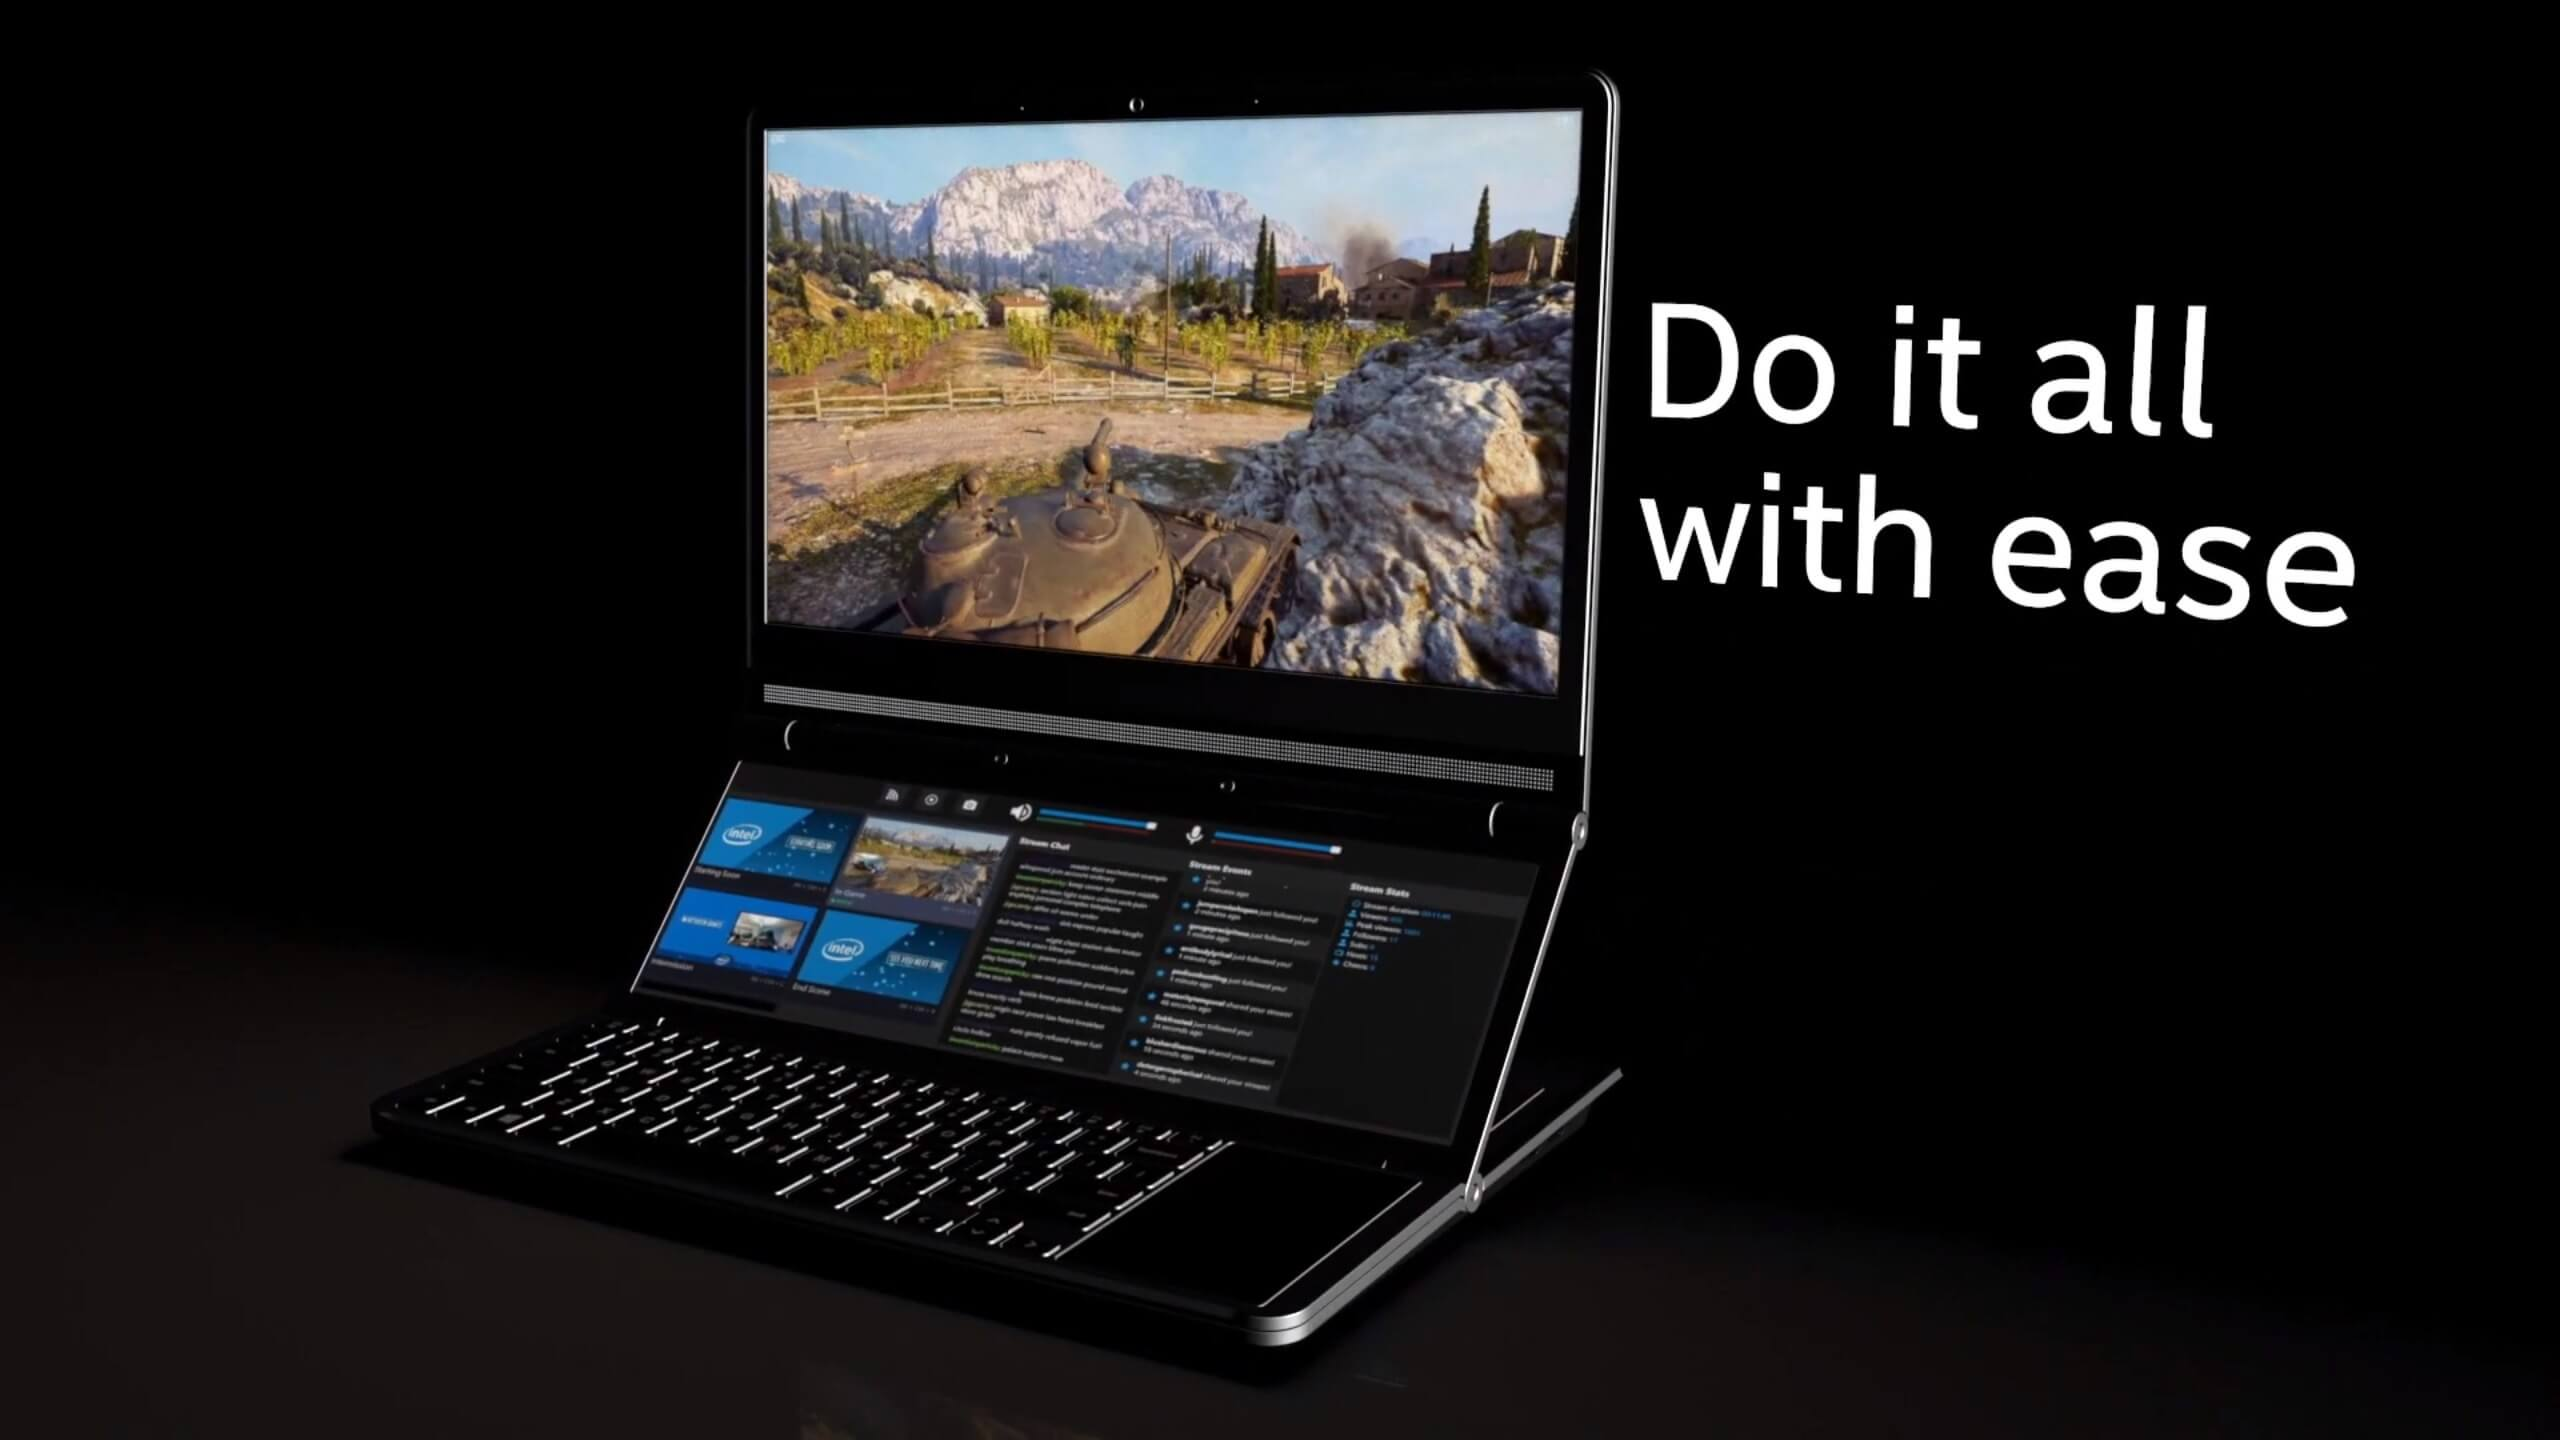 Intel's dual-screen gaming laptop concept stands out from the pack